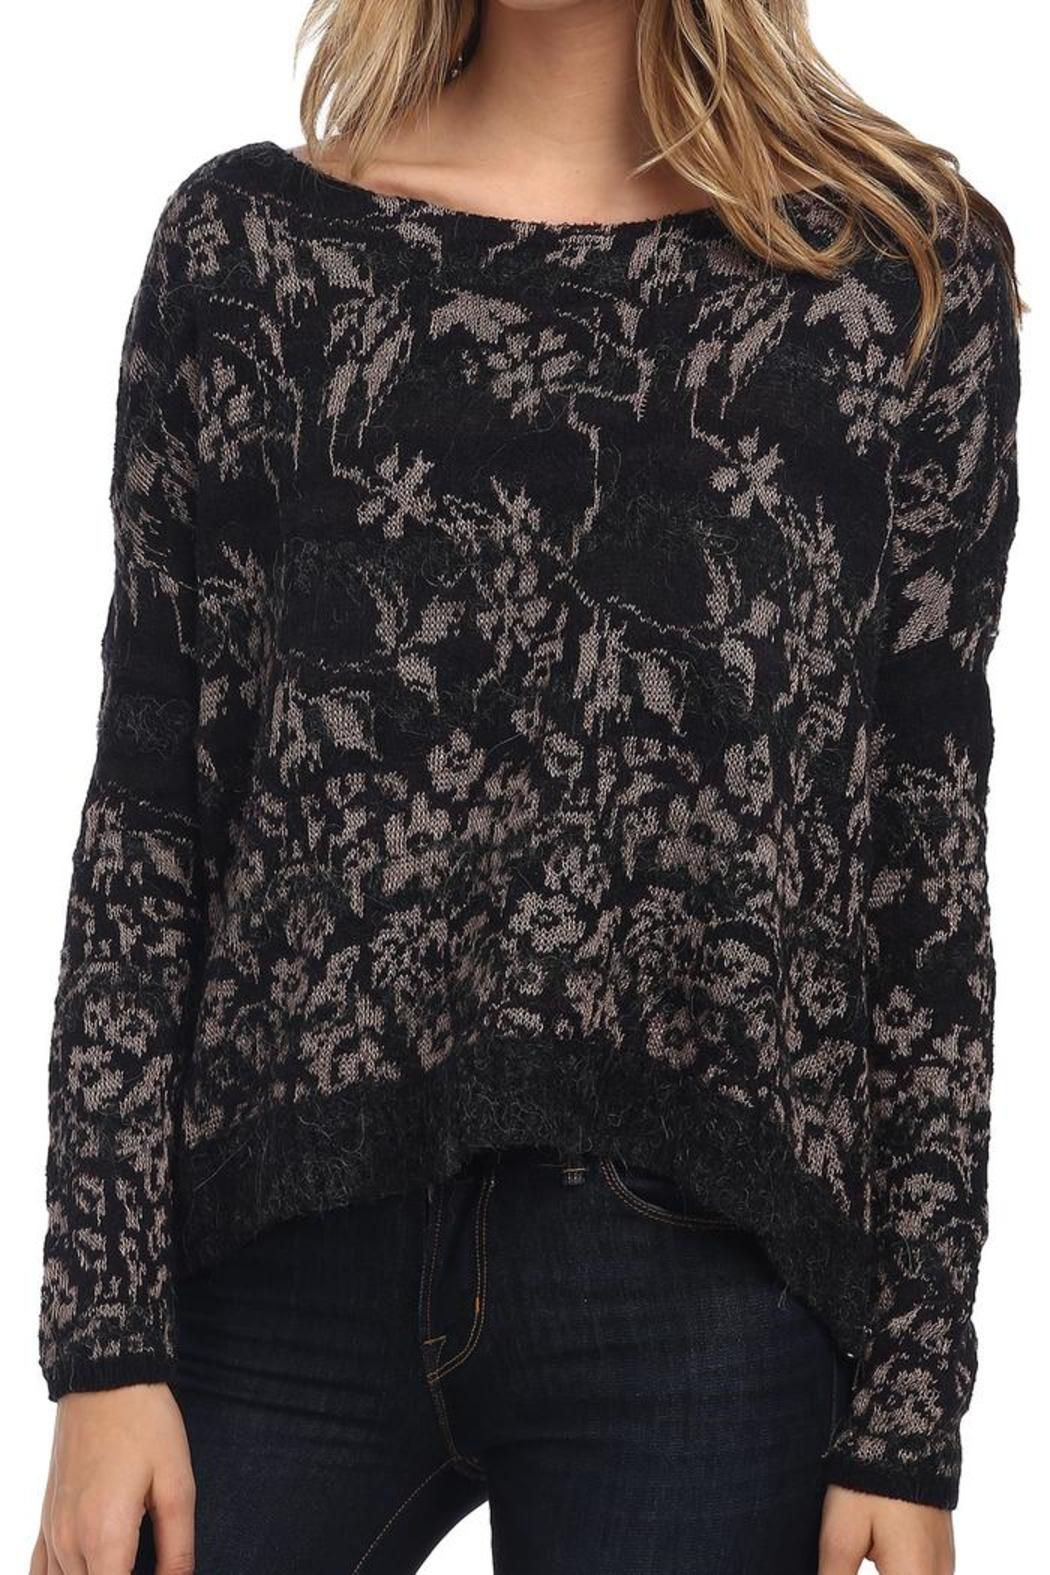 569446f80c2 Shirts. Black floral fields wool-blend sweater with tan floral design